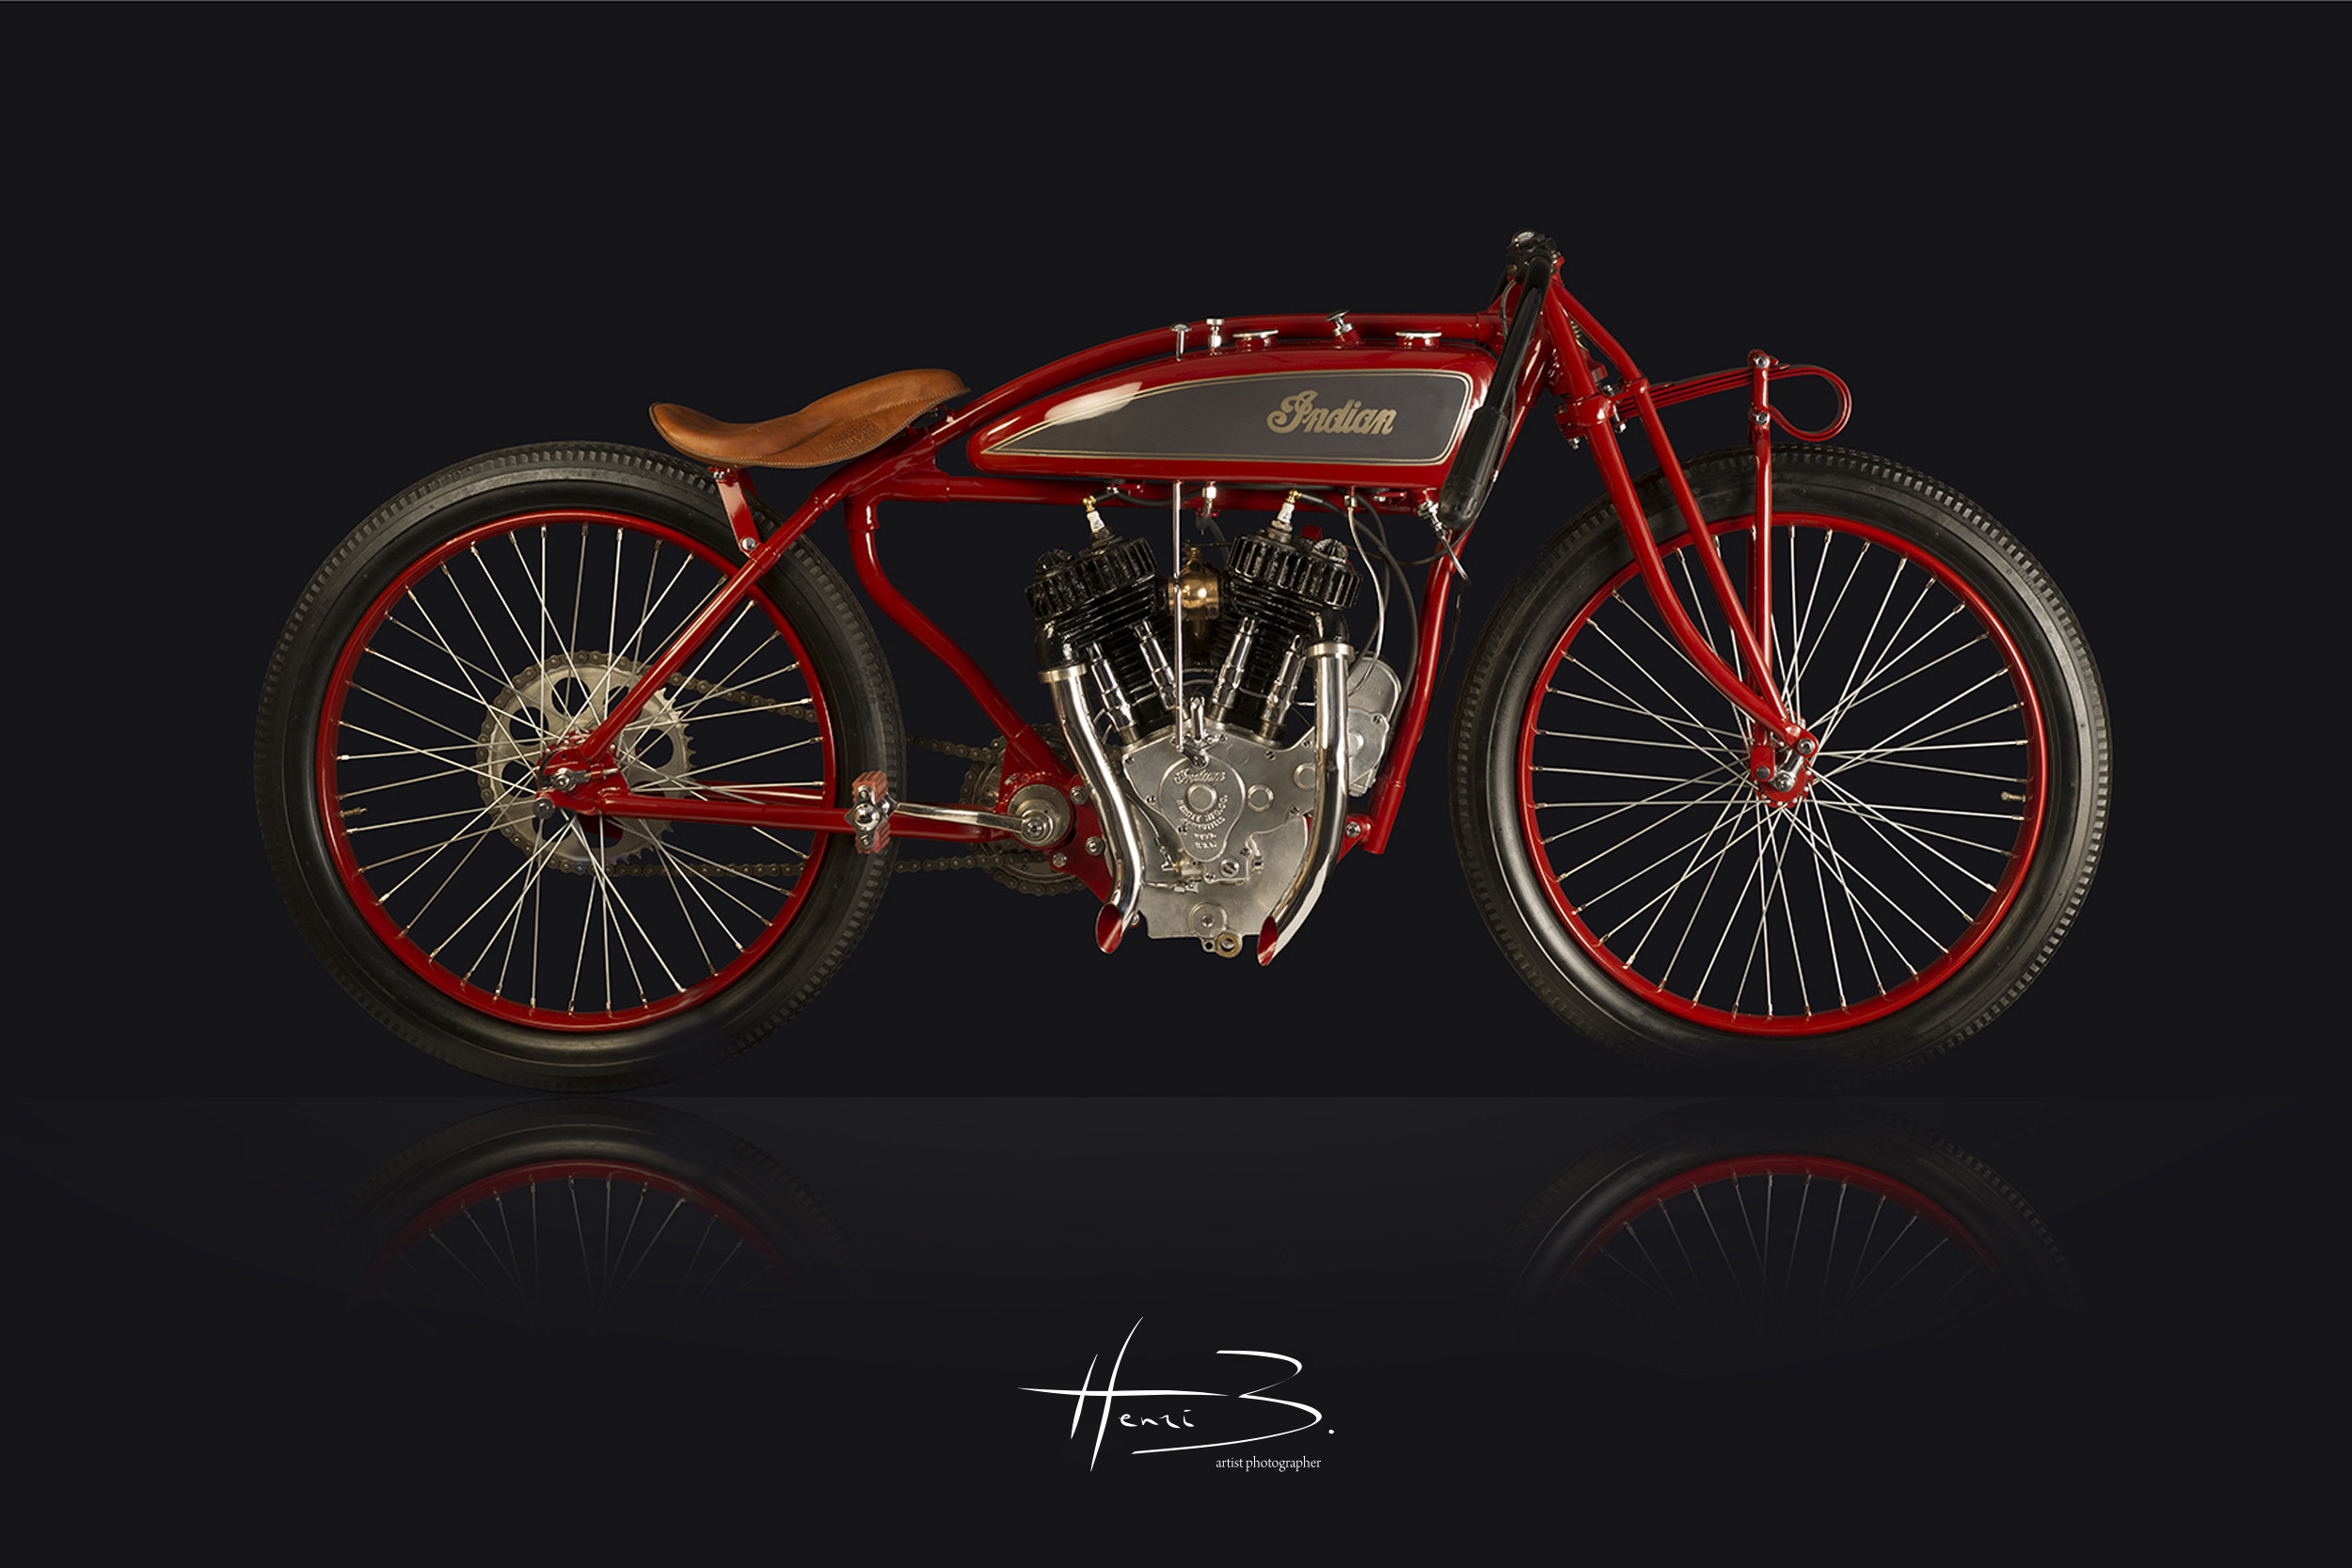 Indian Daytona 1916